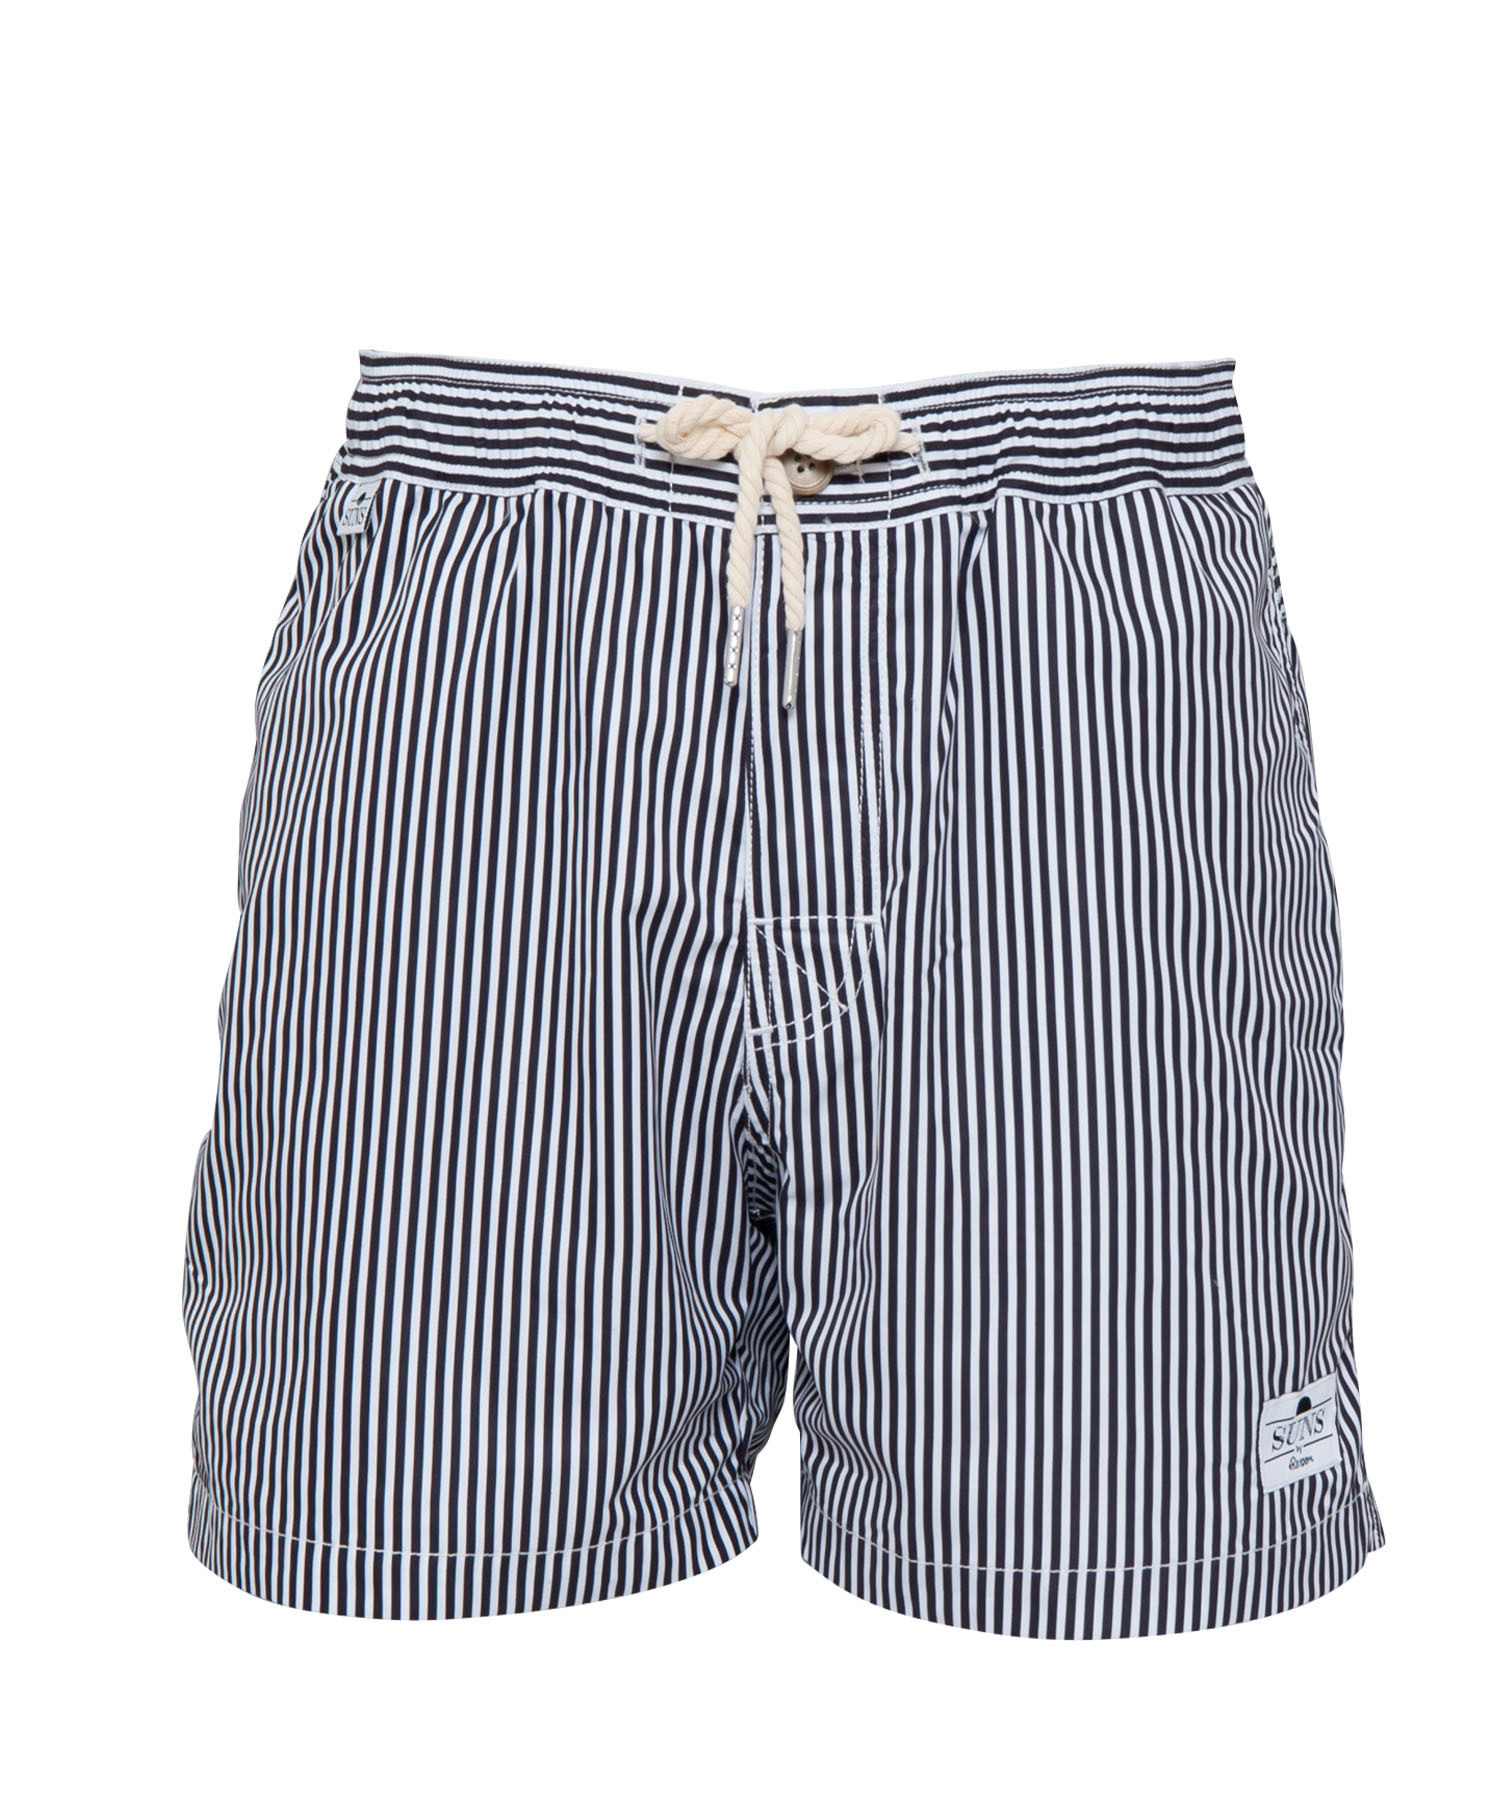 6/28(金)19:00発売 SUNS PLAIN STRIPE SWIM SHORTS[RSW023]